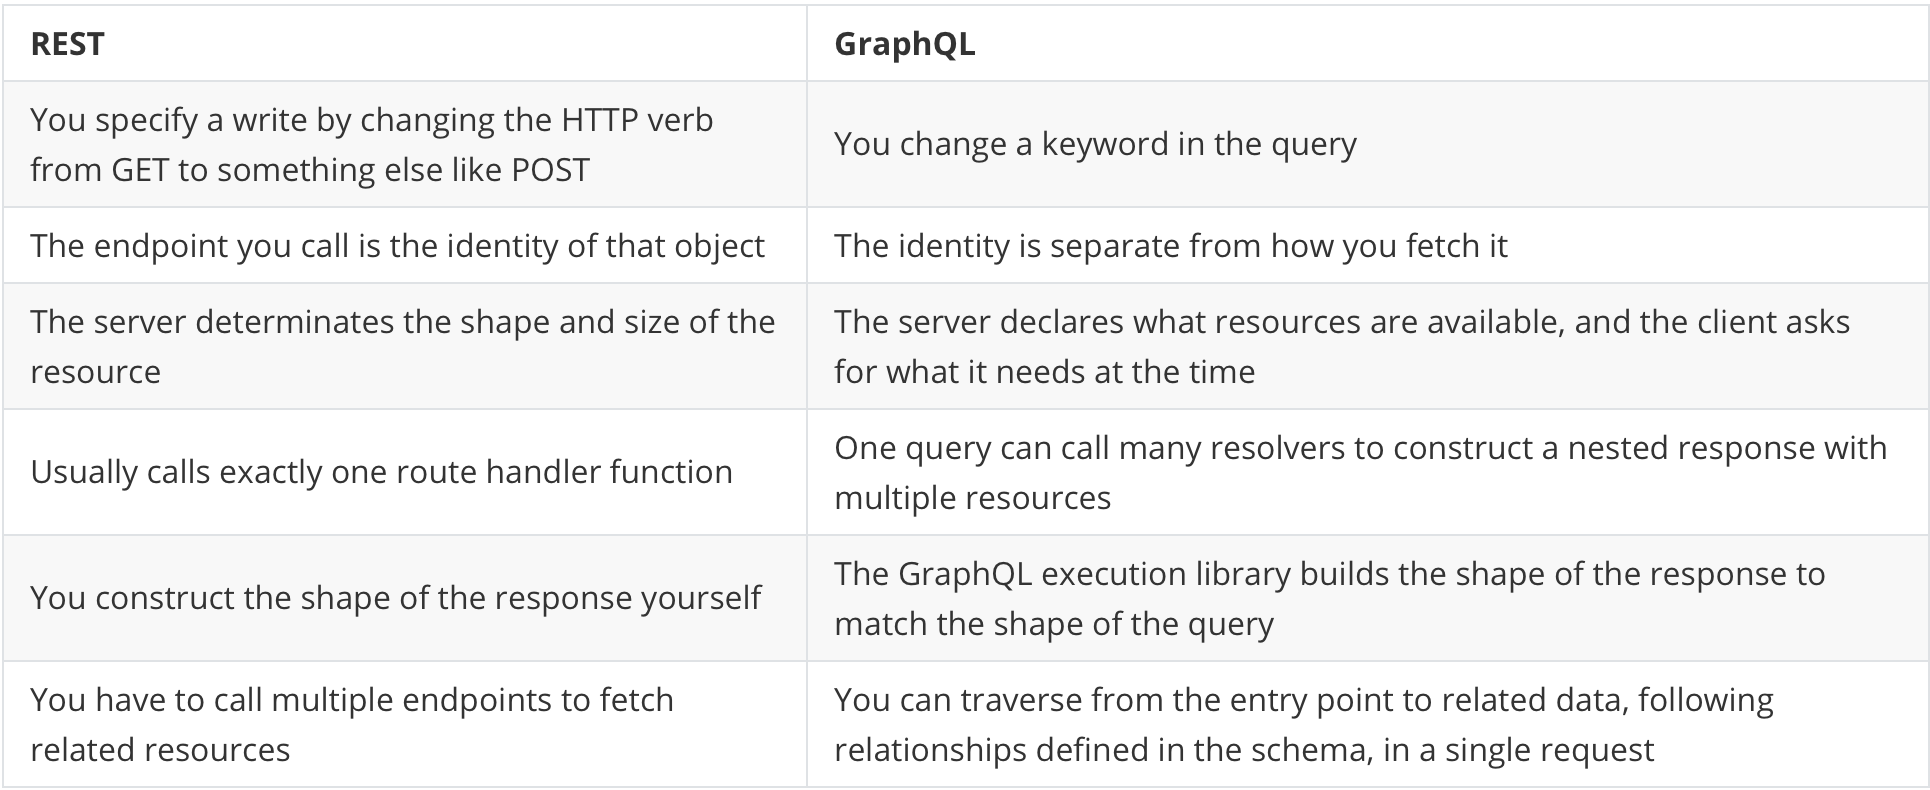 Table showing differences between GraphQL and REST